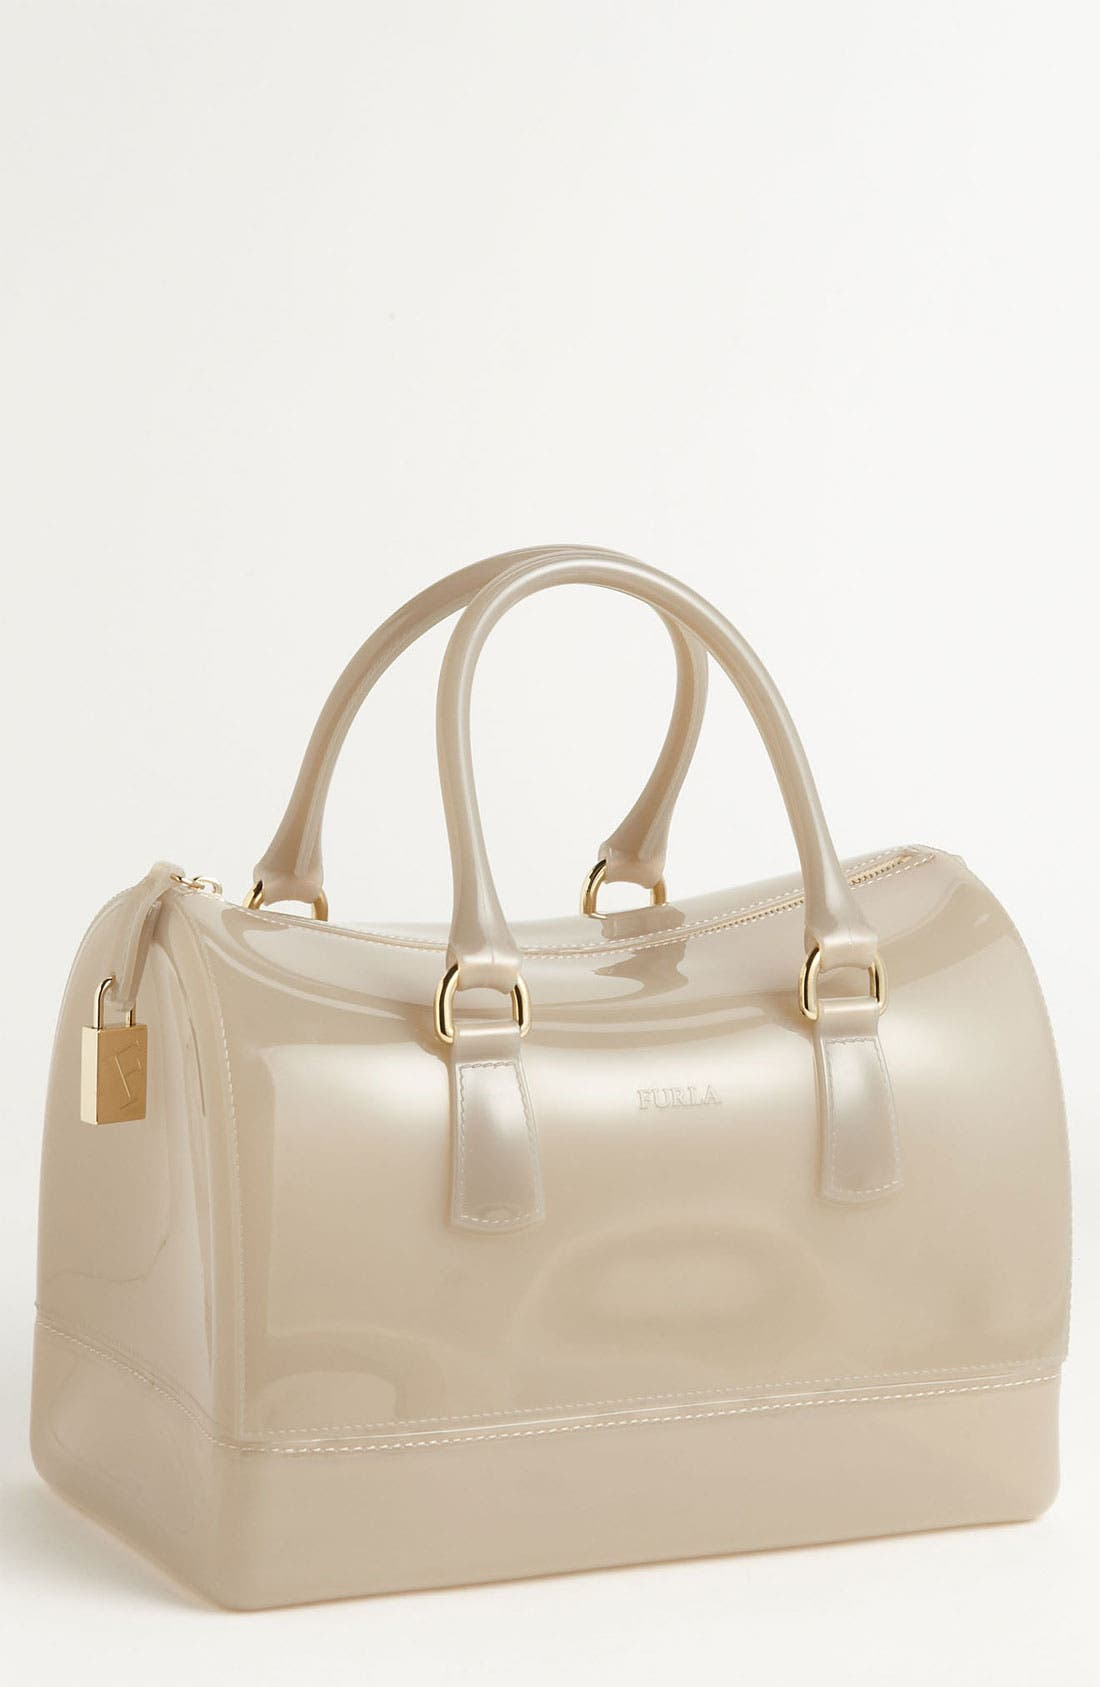 Main Image - Furla 'Candy' Transparent Rubber Satchel